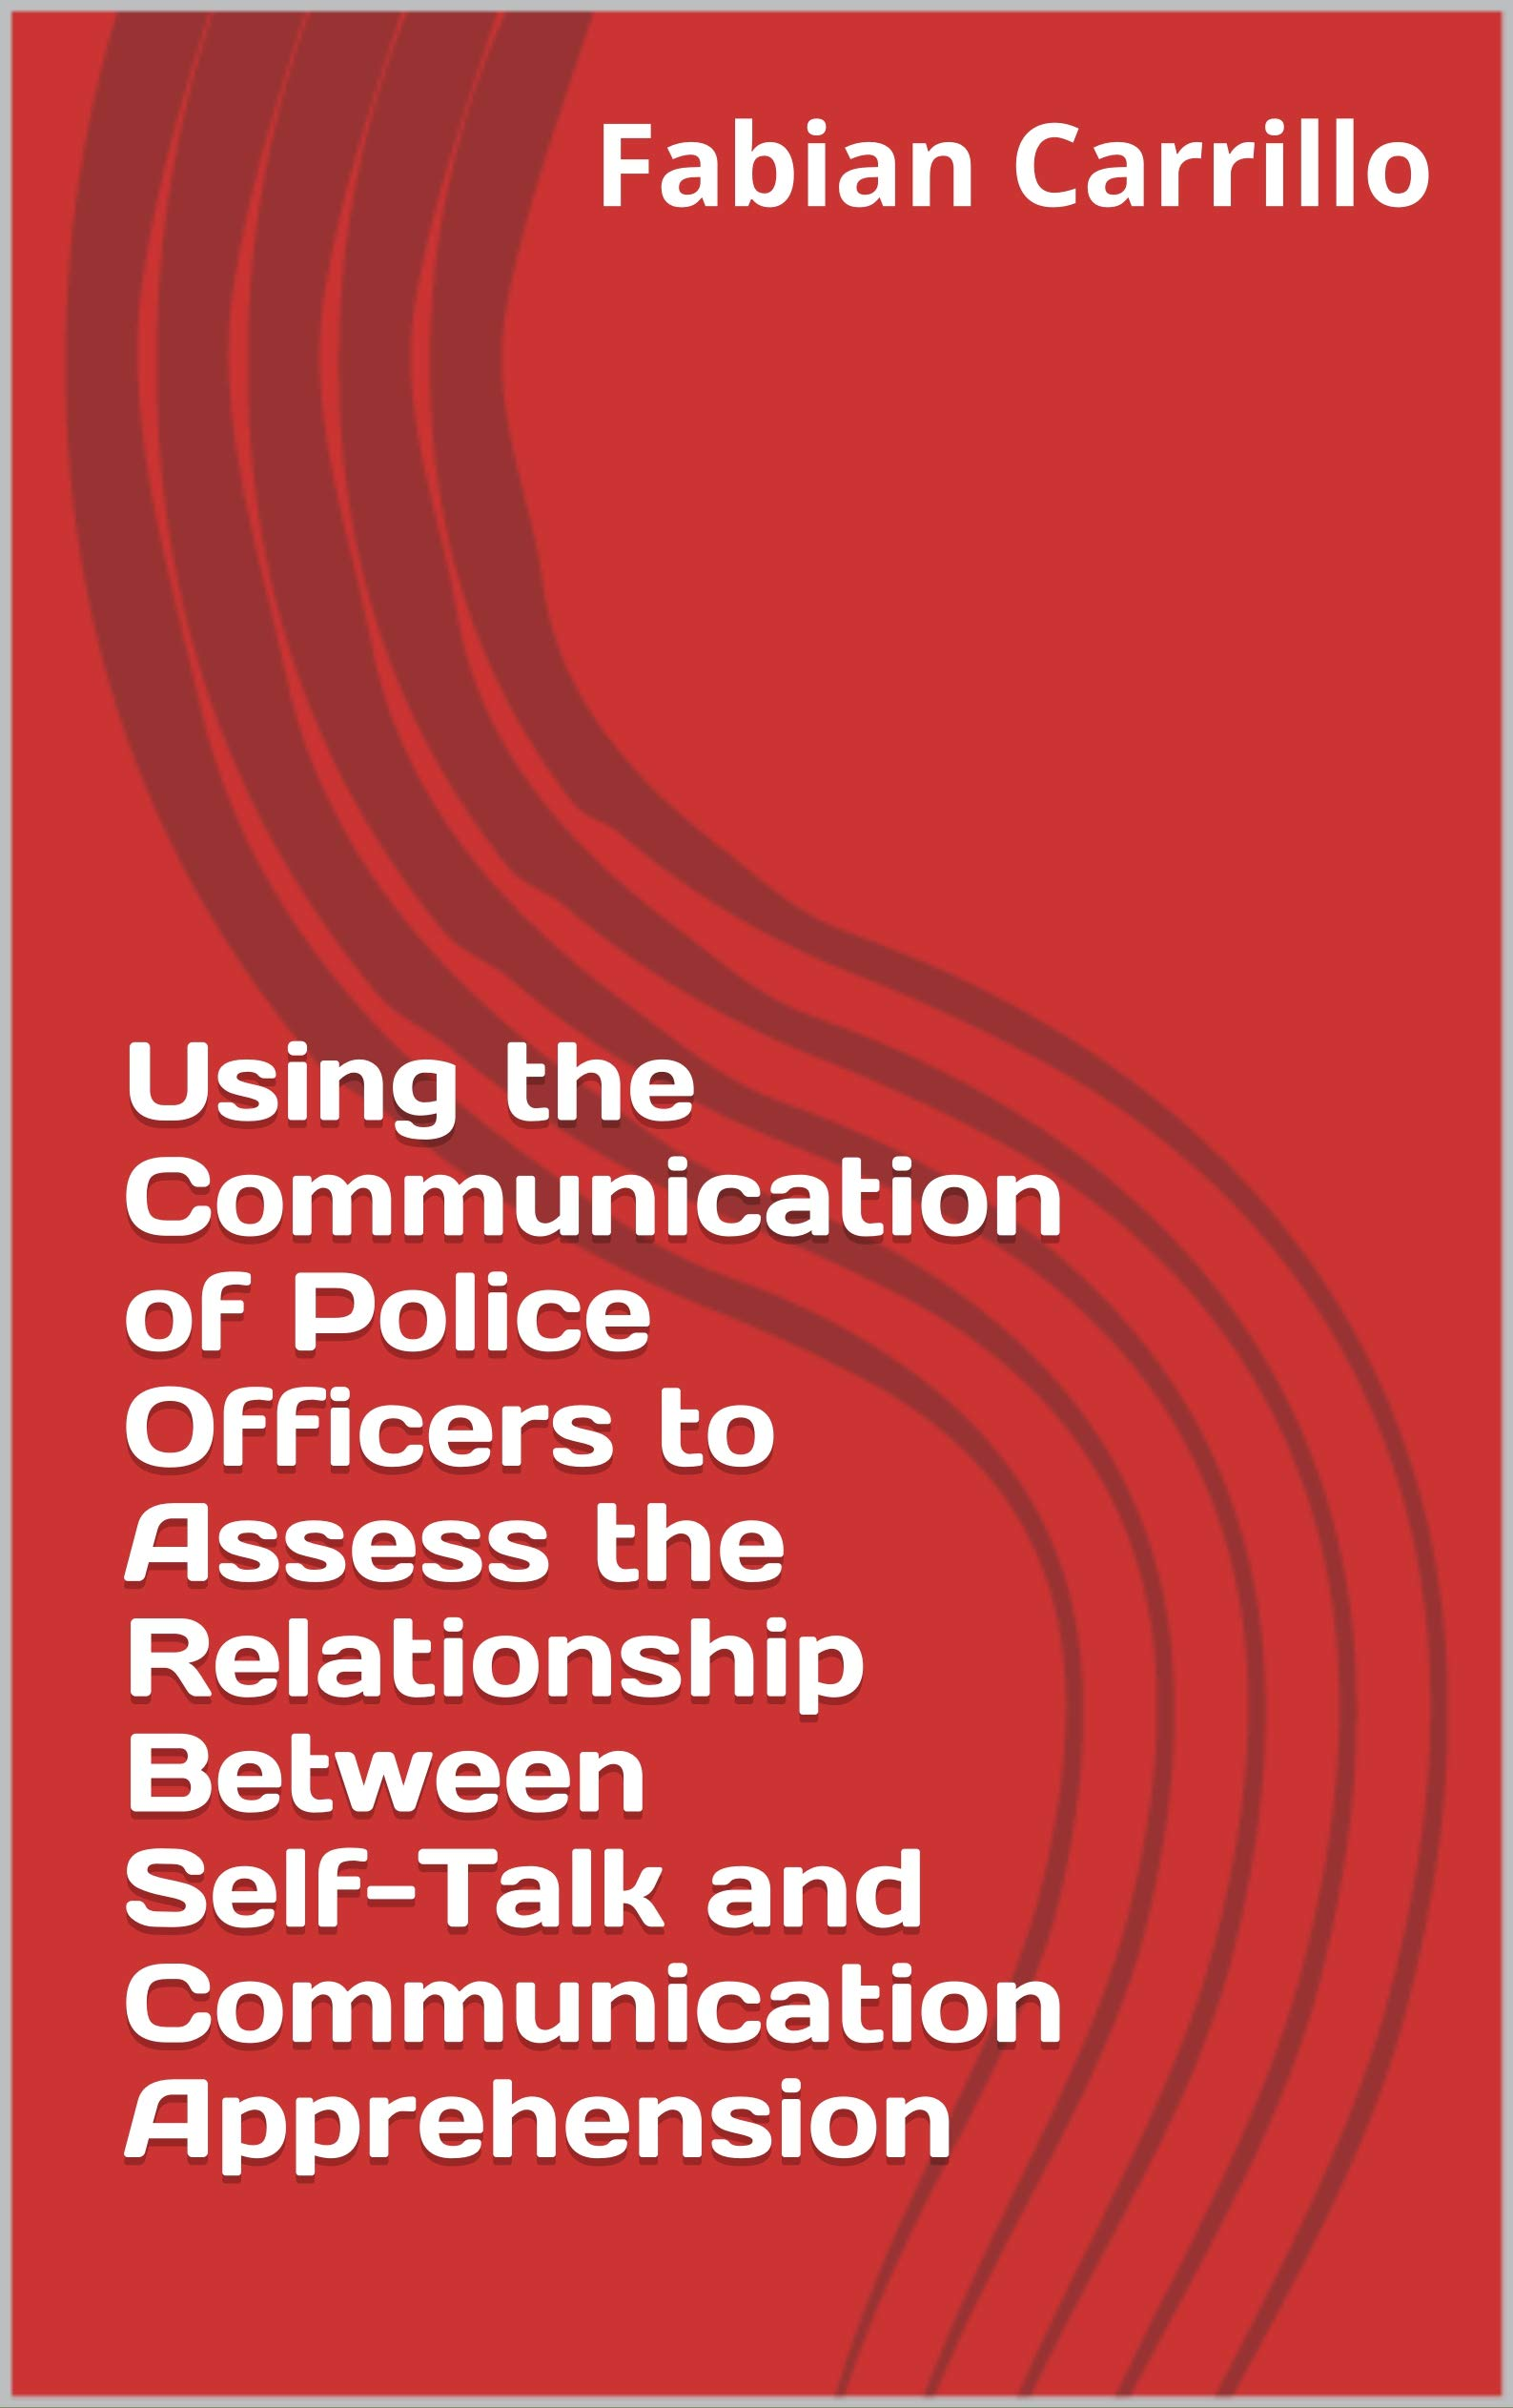 Using the Communication of Police Officers to Assess the Relationship Between Self-Talk and Communication Apprehension